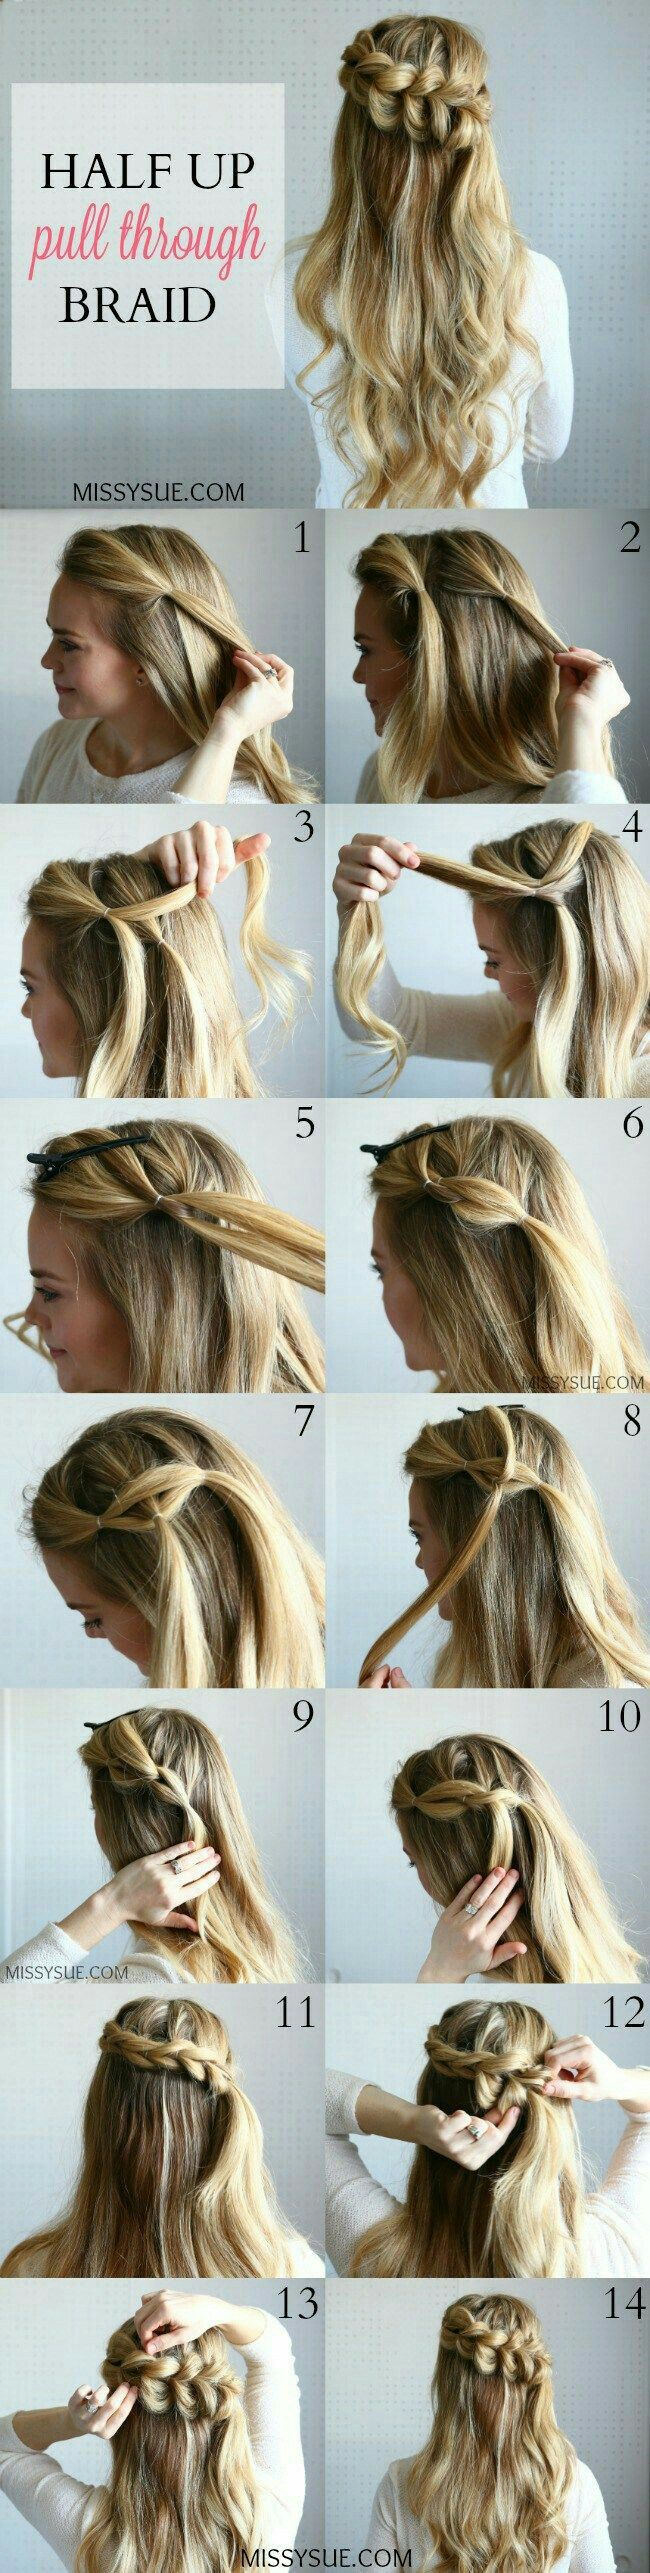 Best Braid Crown Ideas On Pinterest Crown Braids Braid - Braid diy pinterest